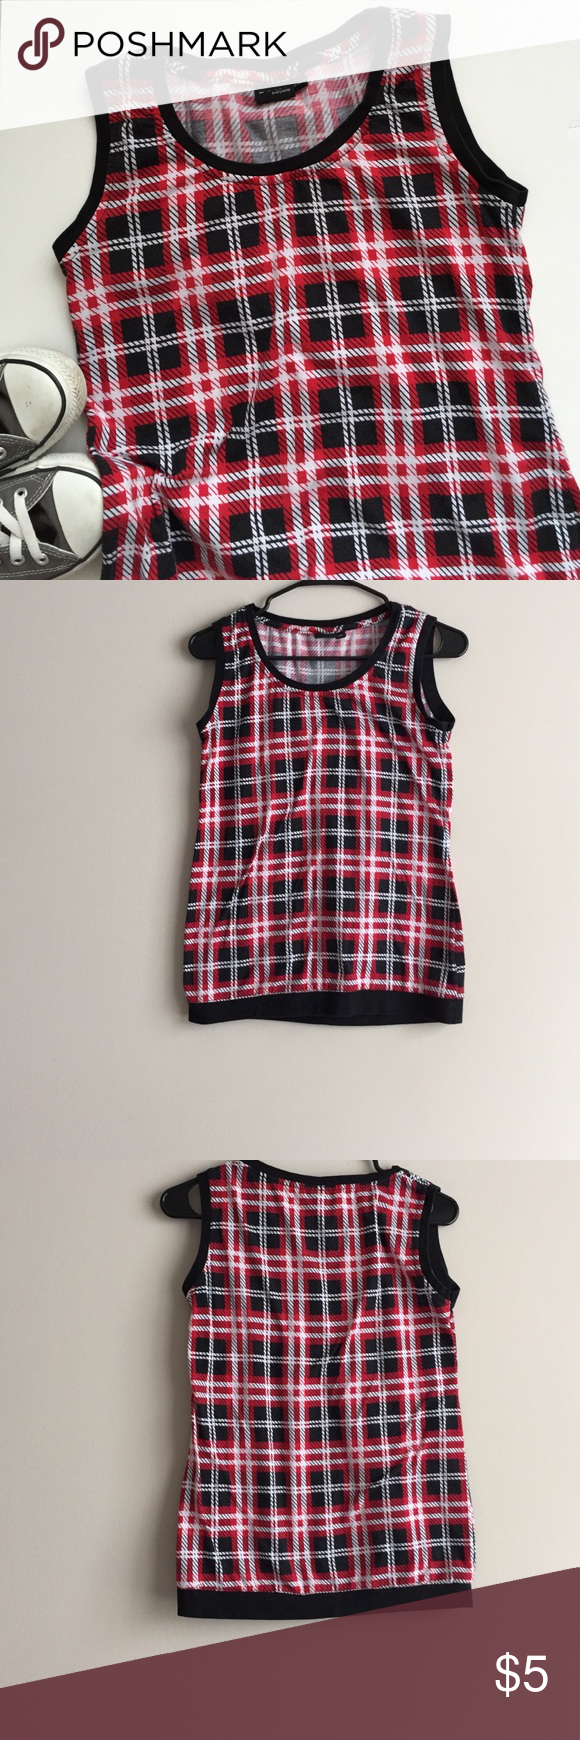 Sleeveless tee Red black and white sleeveless tee. Excellent condition. Bundle and save more. Tops Tees - Short Sleeve